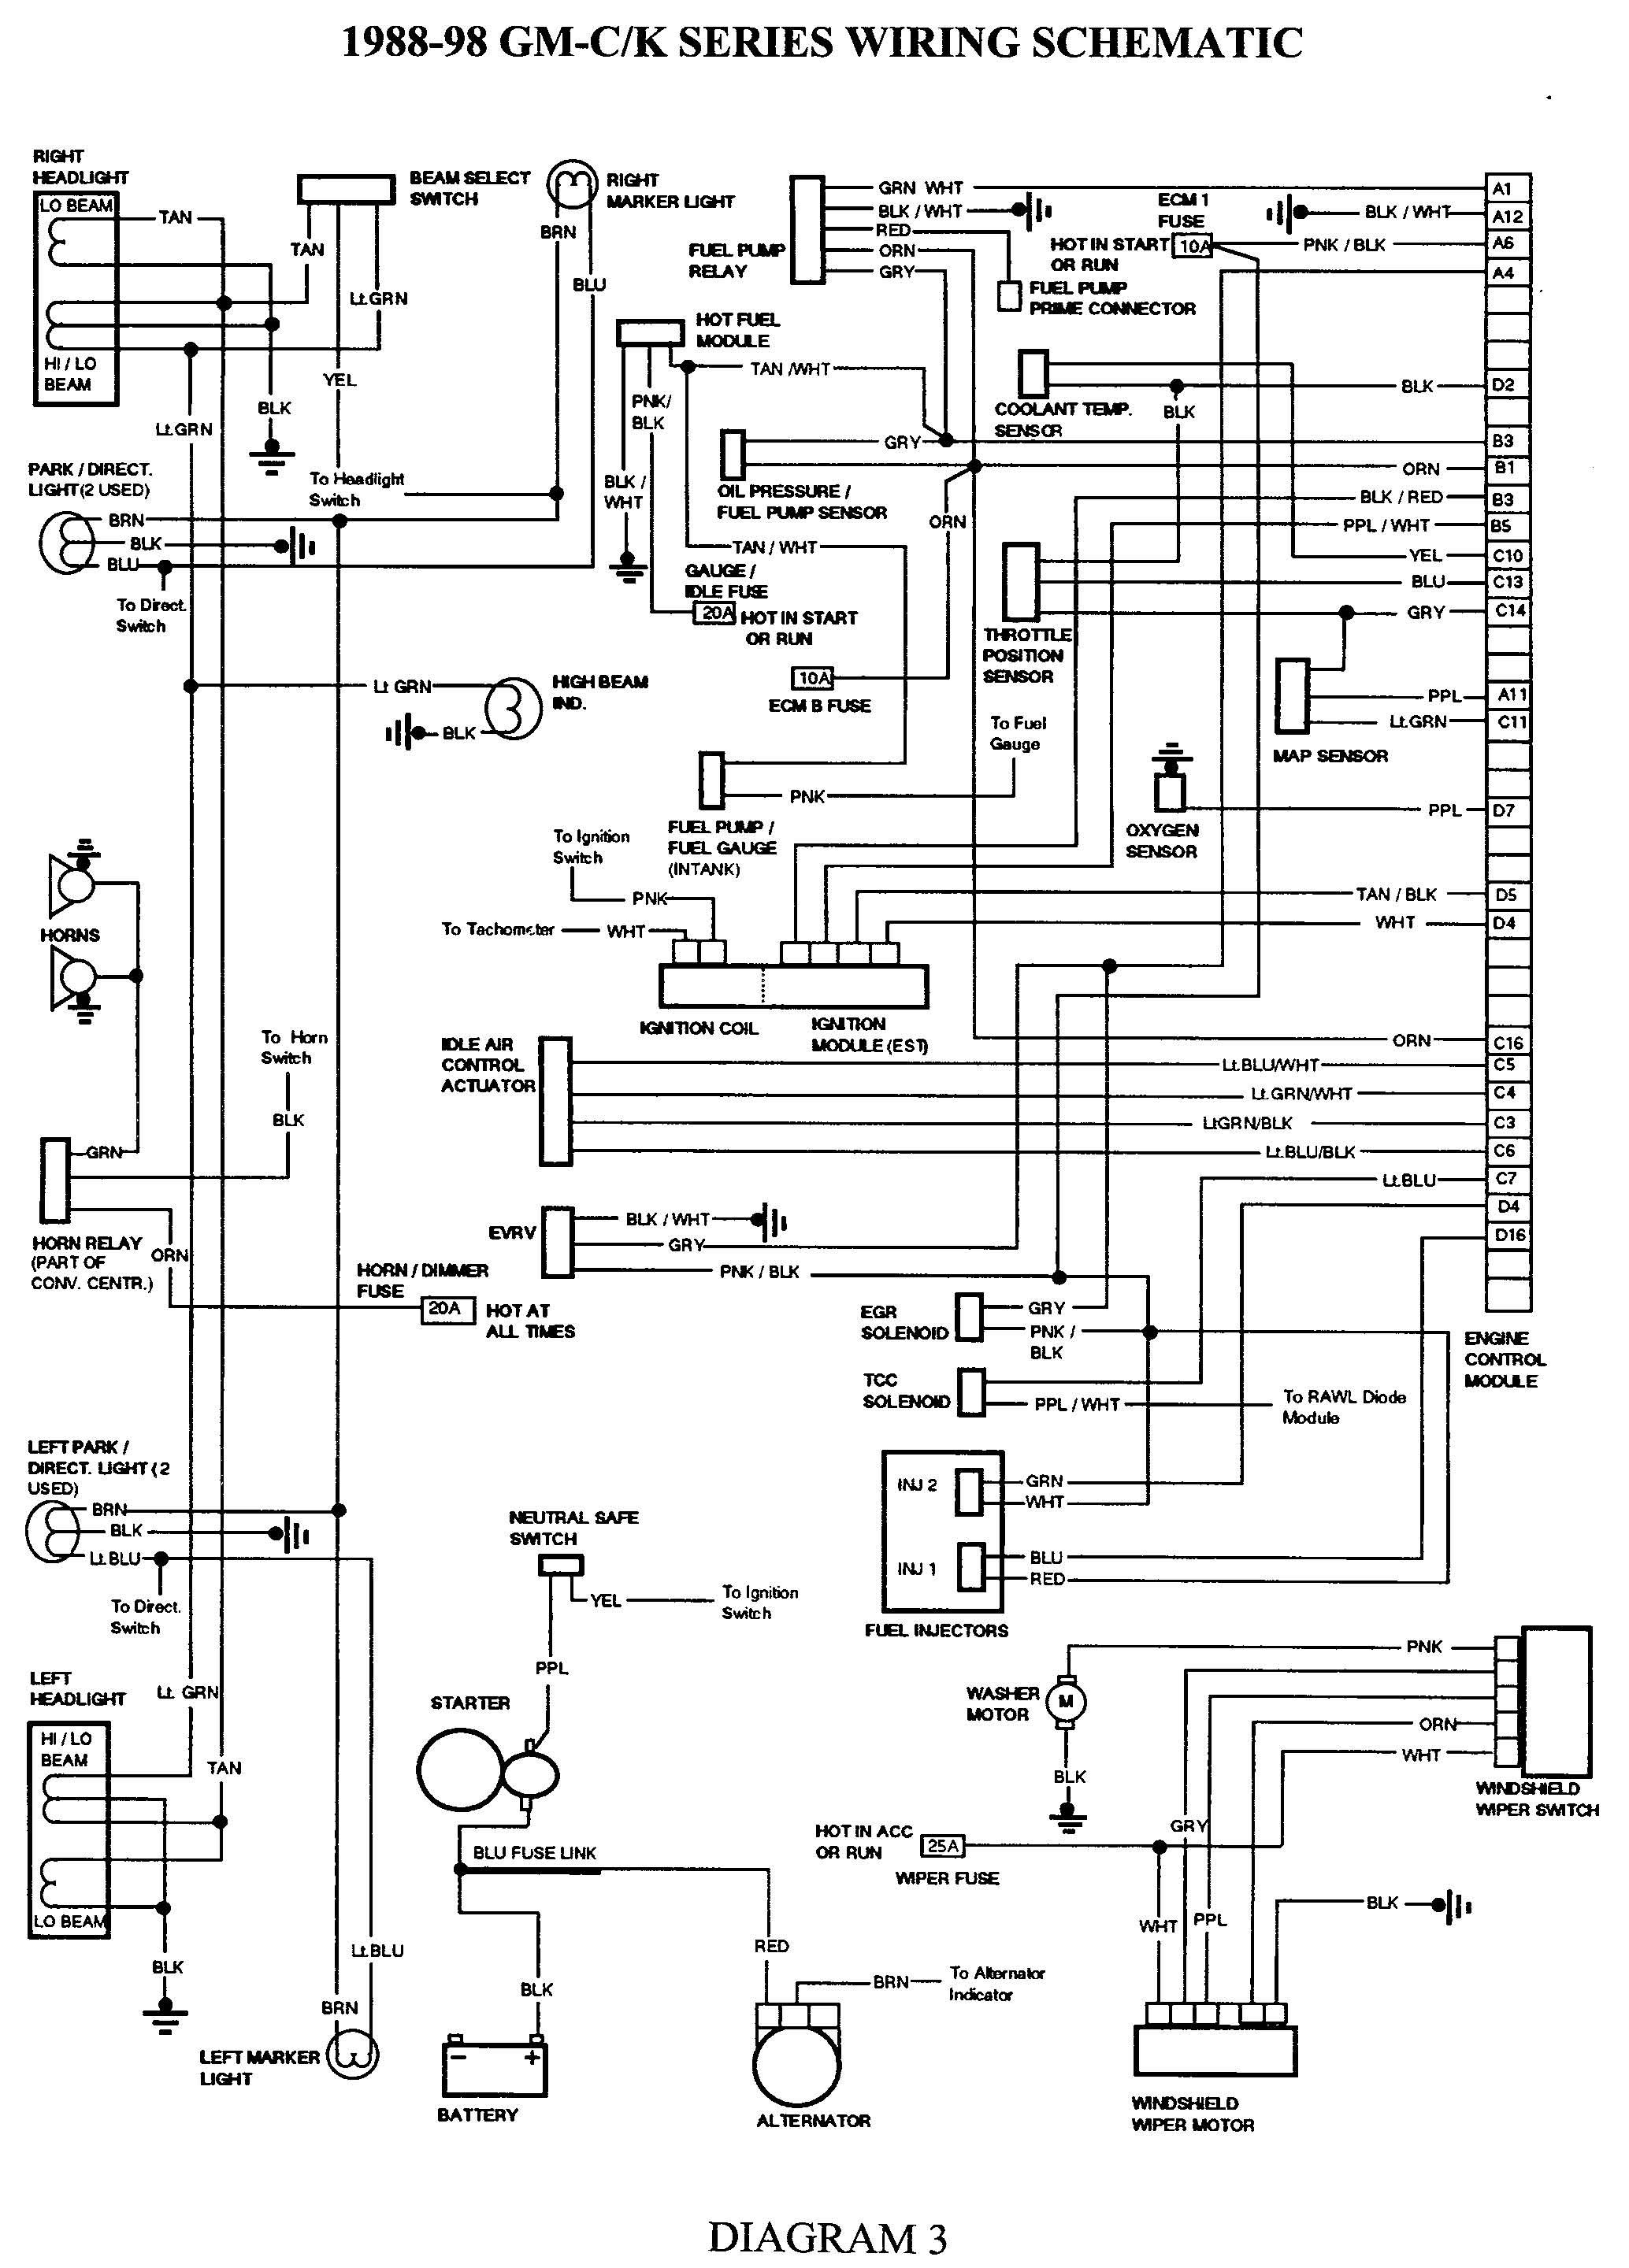 b2f2e5dbdc07dada83ef514f6d4ce3d4 gmc truck wiring diagrams on gm wiring harness diagram 88 98 kc chevy wiring harness at bakdesigns.co